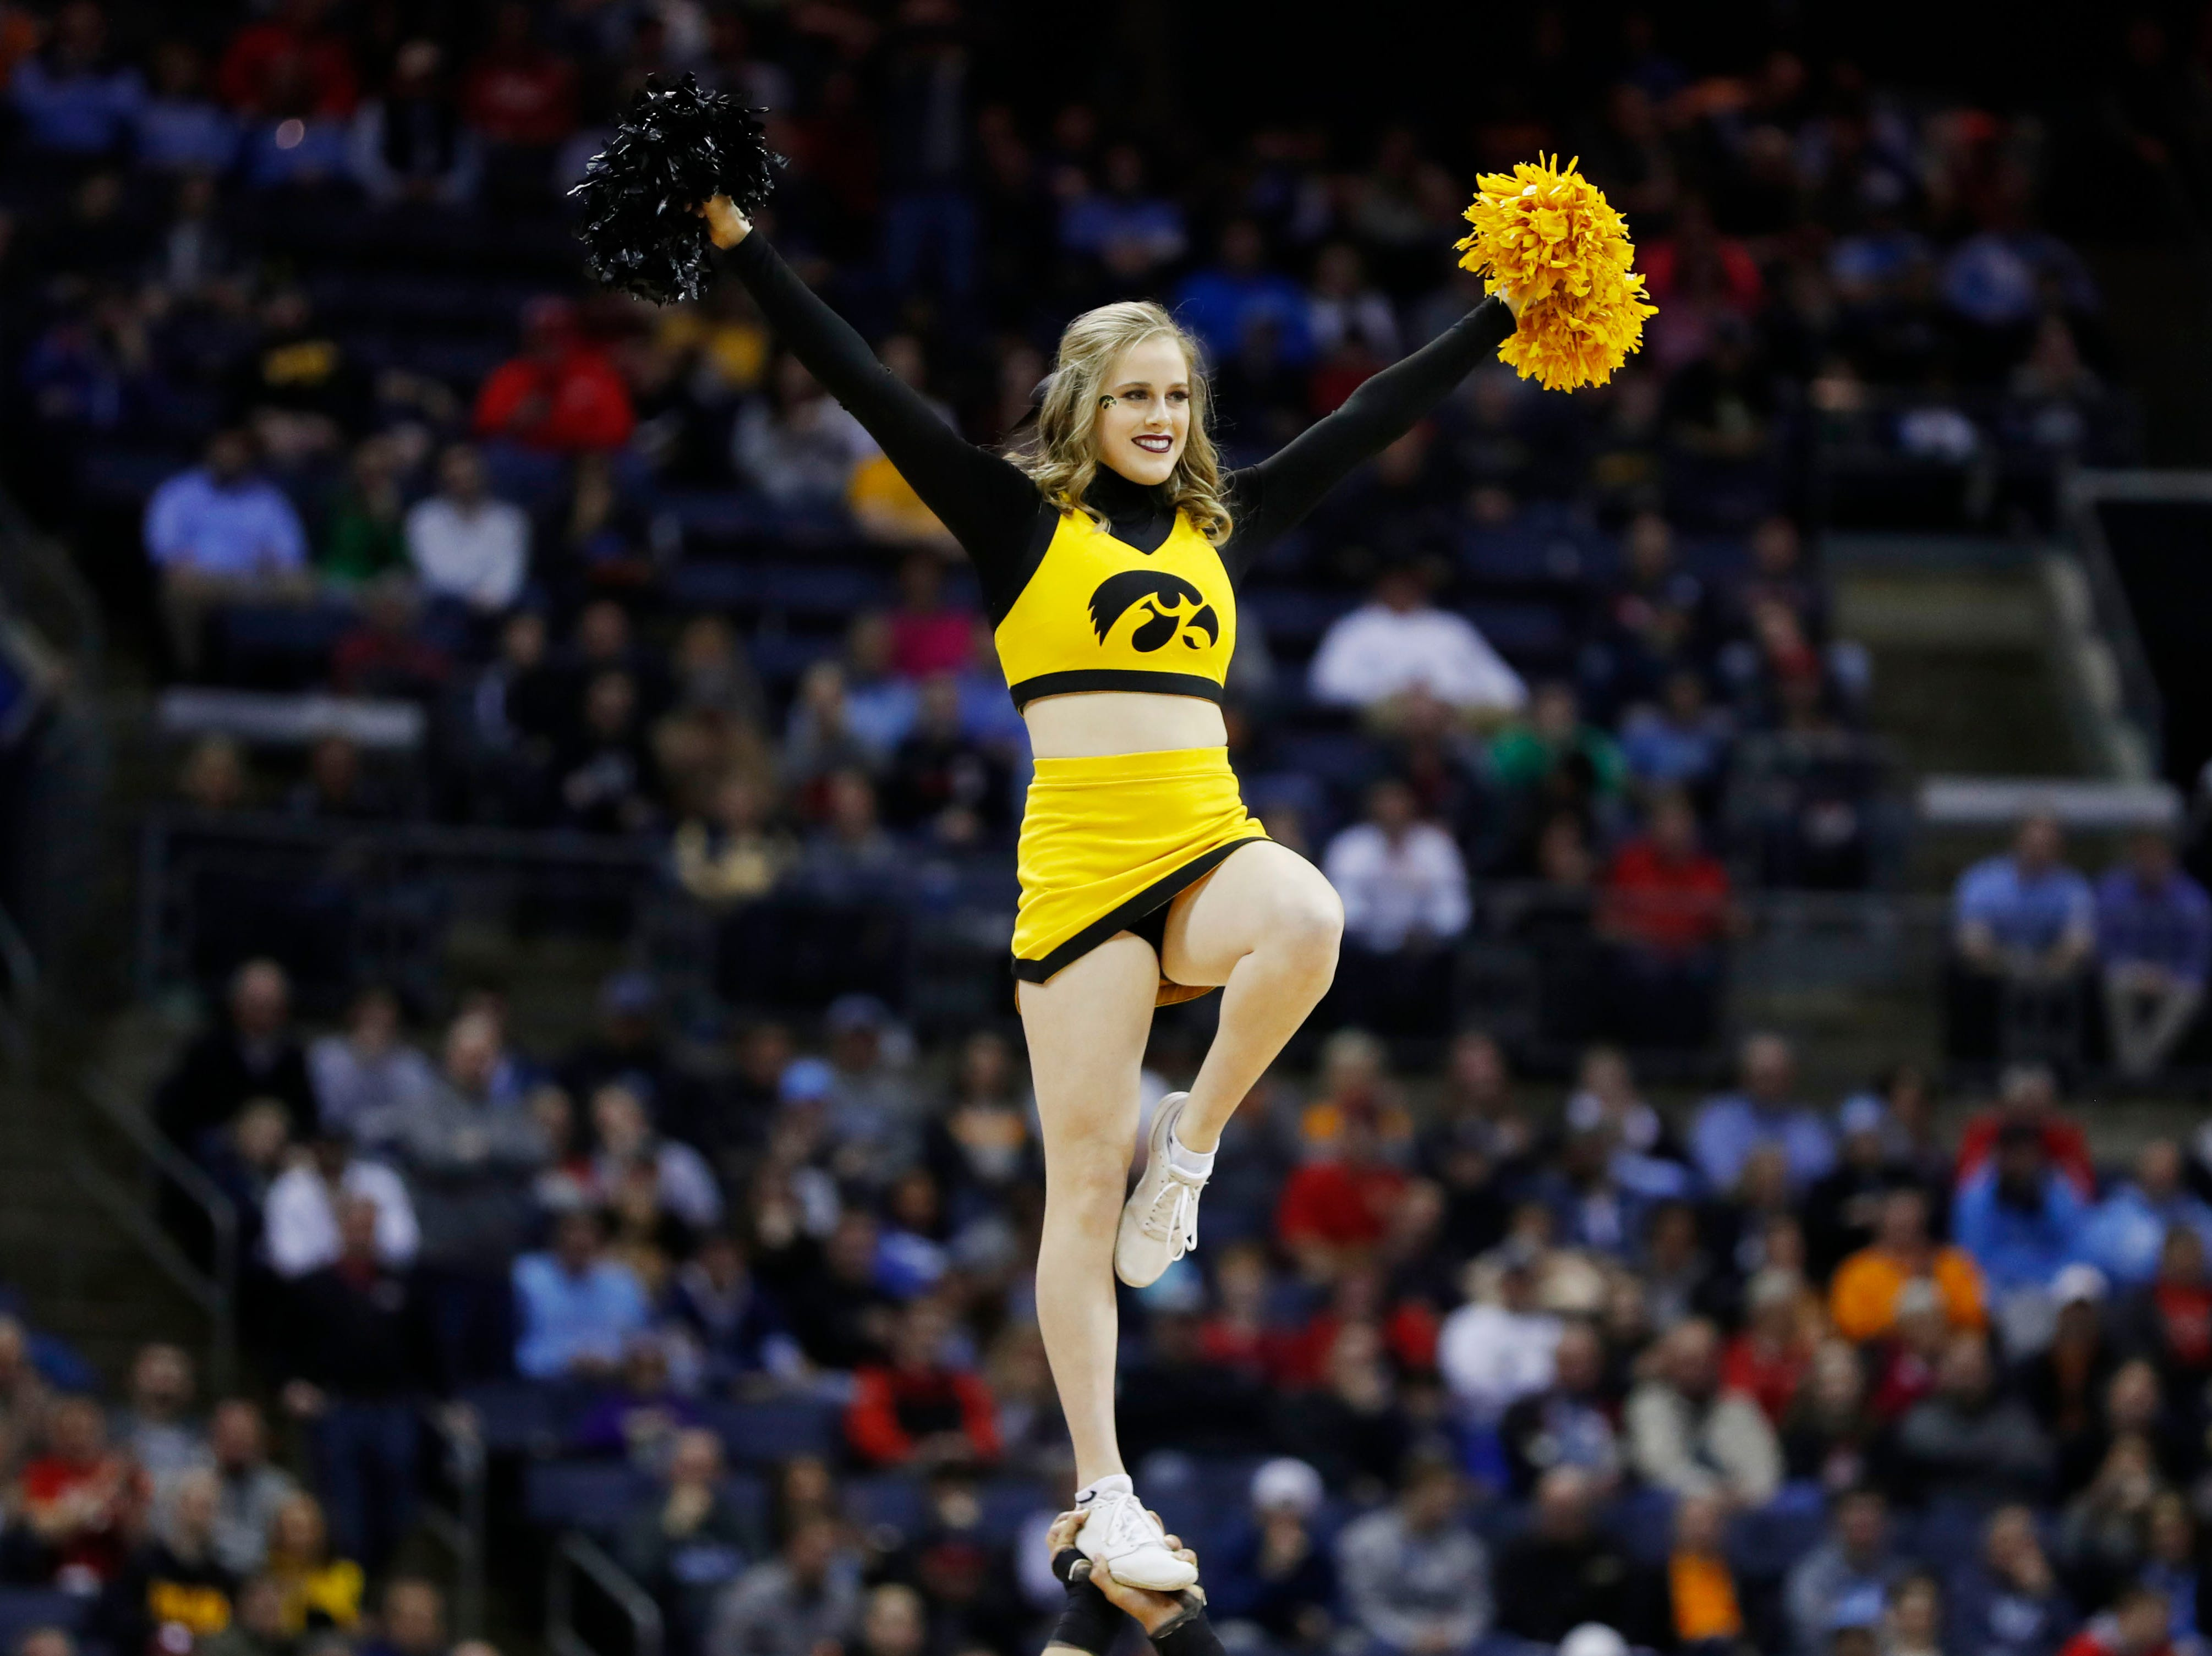 Iowa Hawkeyes cheerleader in the first half against the Tennessee Volunteers in the second round of the 2019 NCAA Tournament at Nationwide Arena.